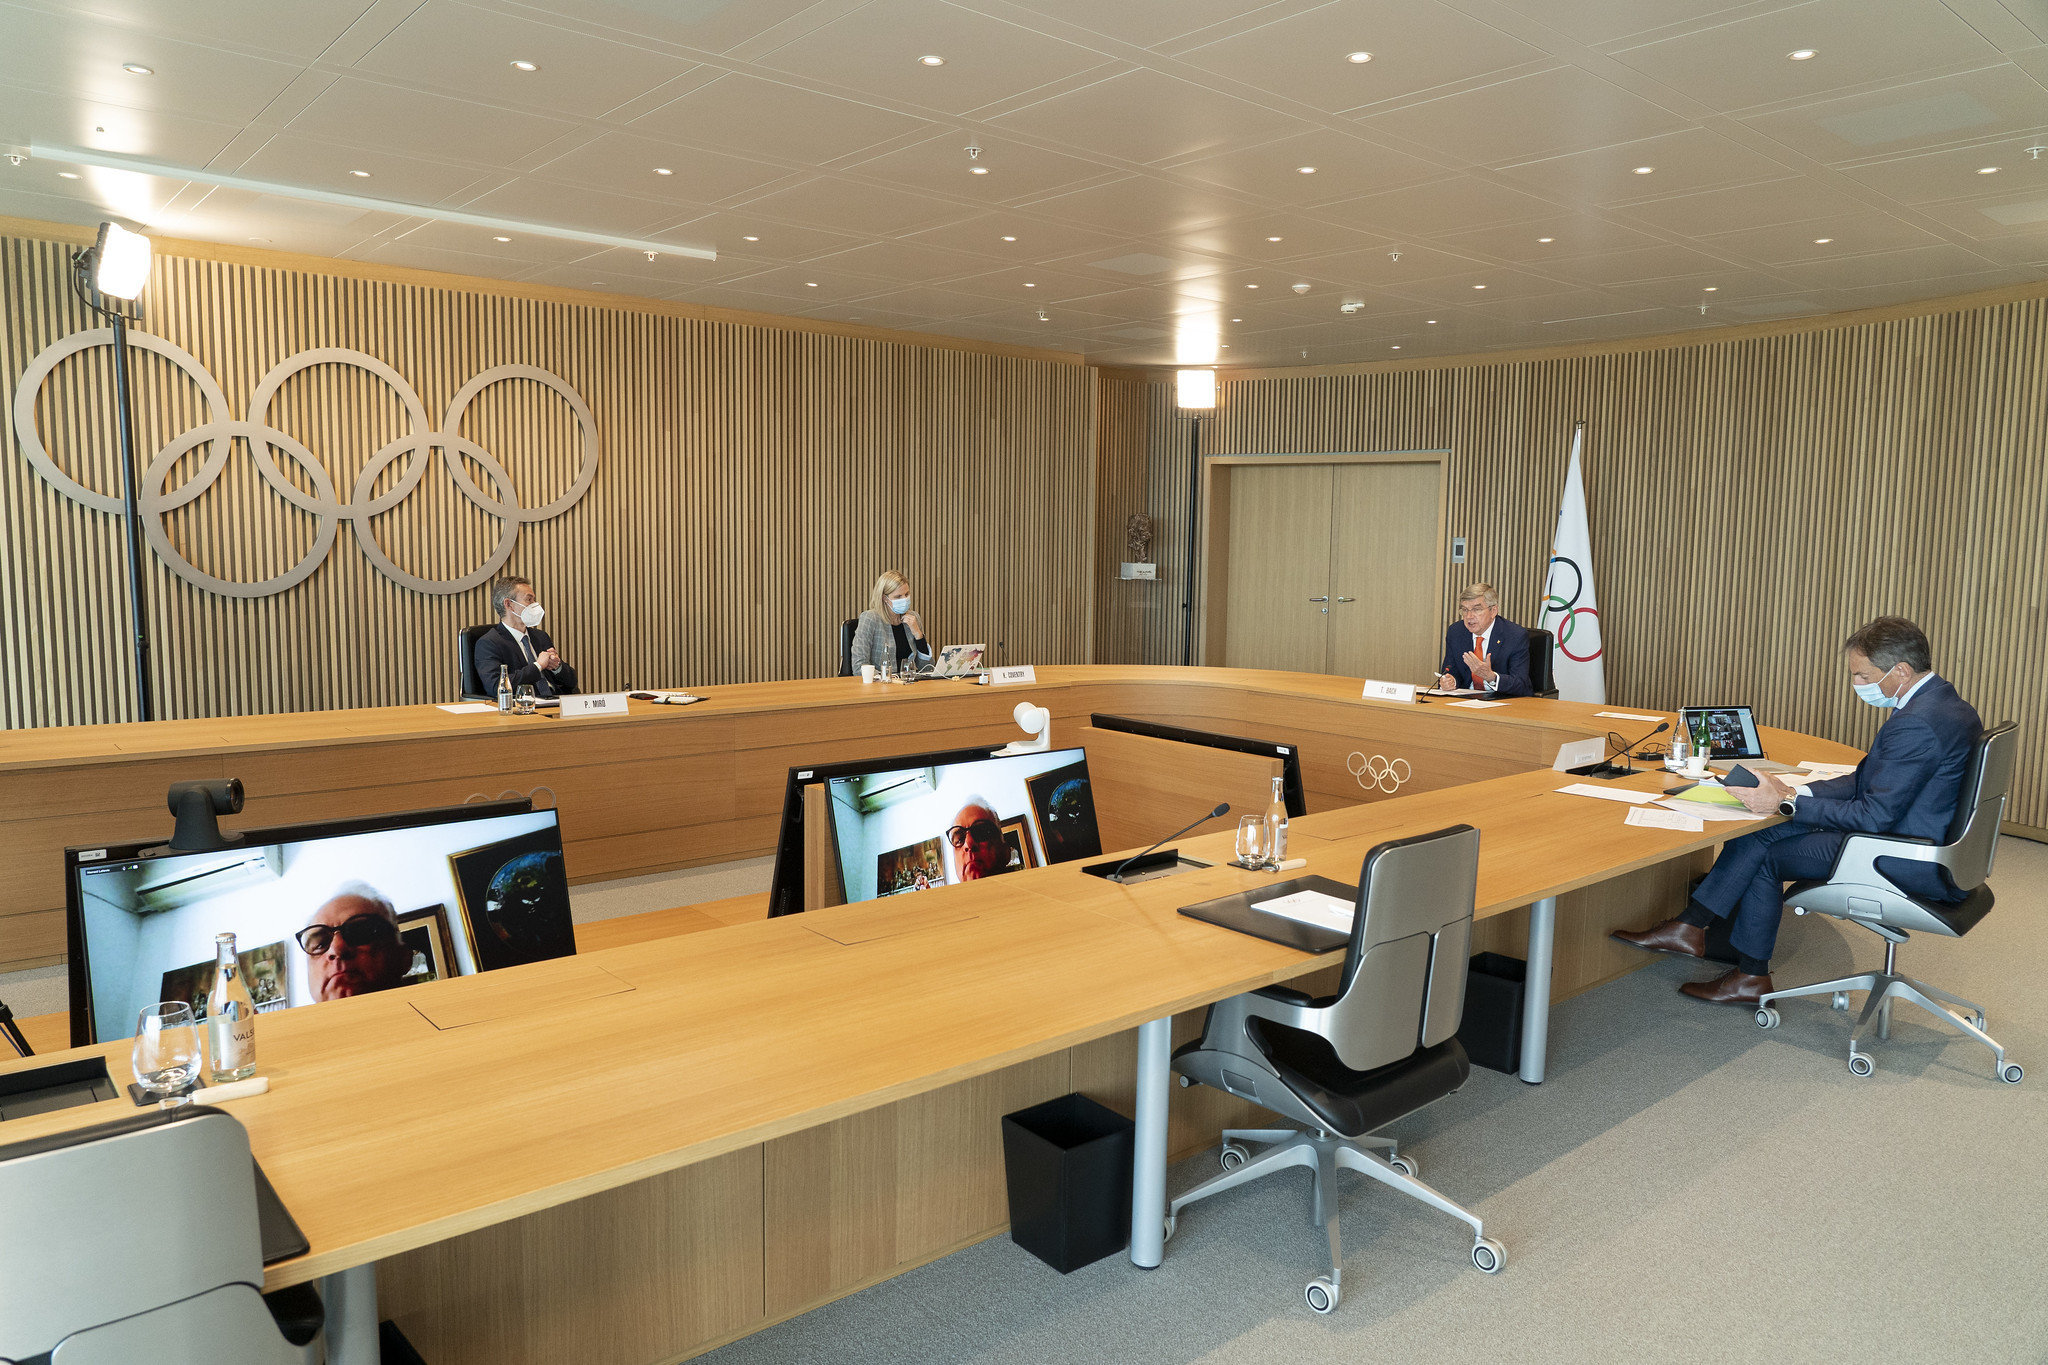 The IOC Executive Board endorsed the Olympic motto change proposed by Thomas Bach ©IOC